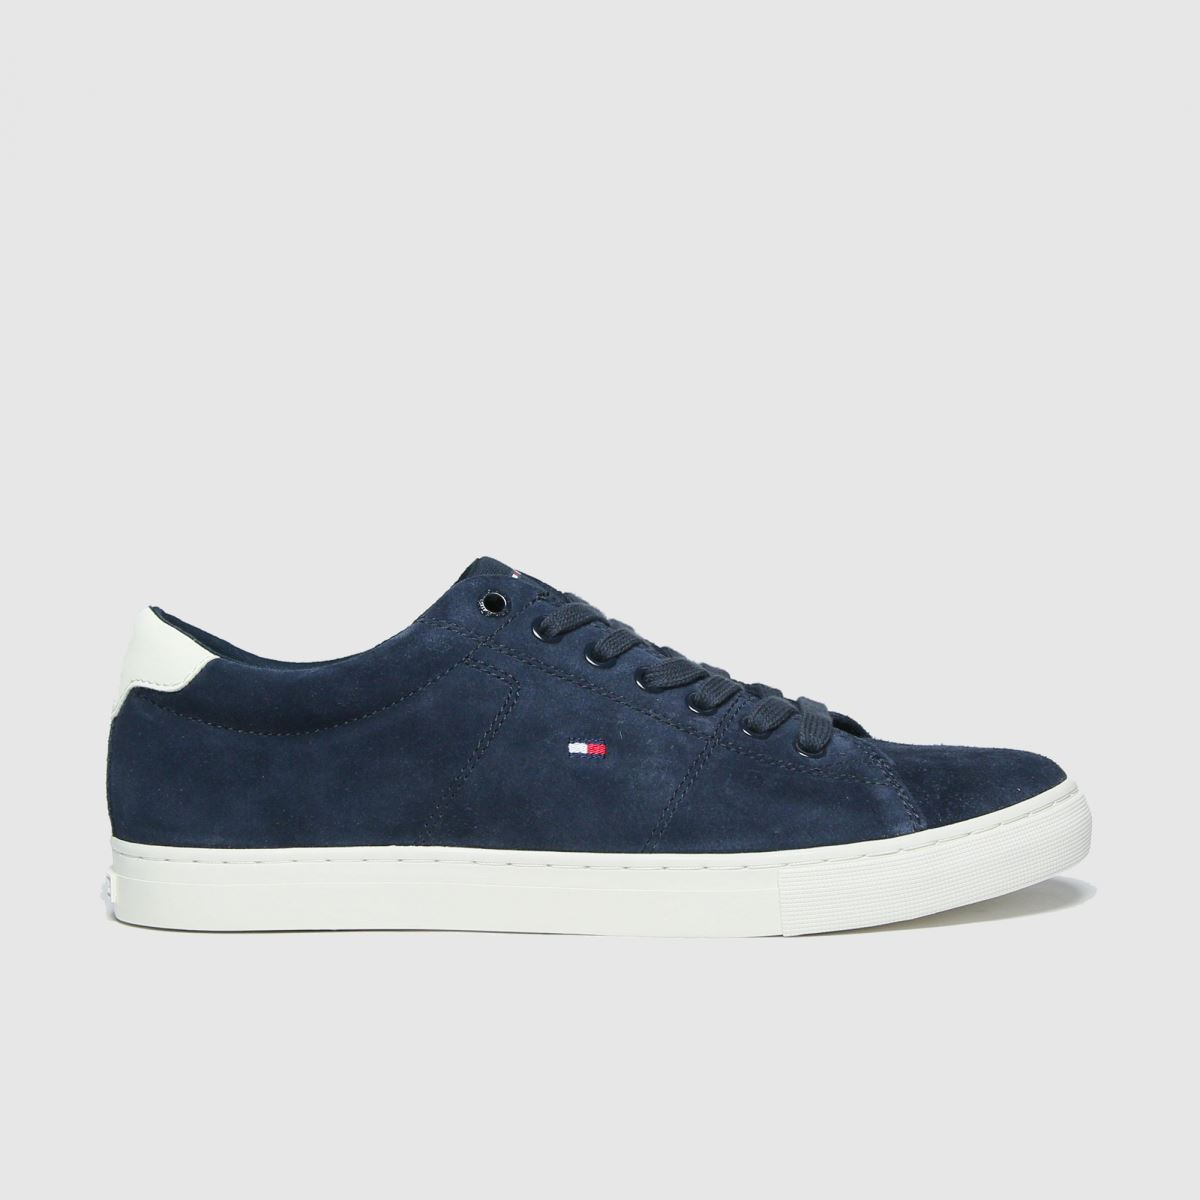 Tommy Hilfiger Navy Suede Vulc Sneaker Trainers